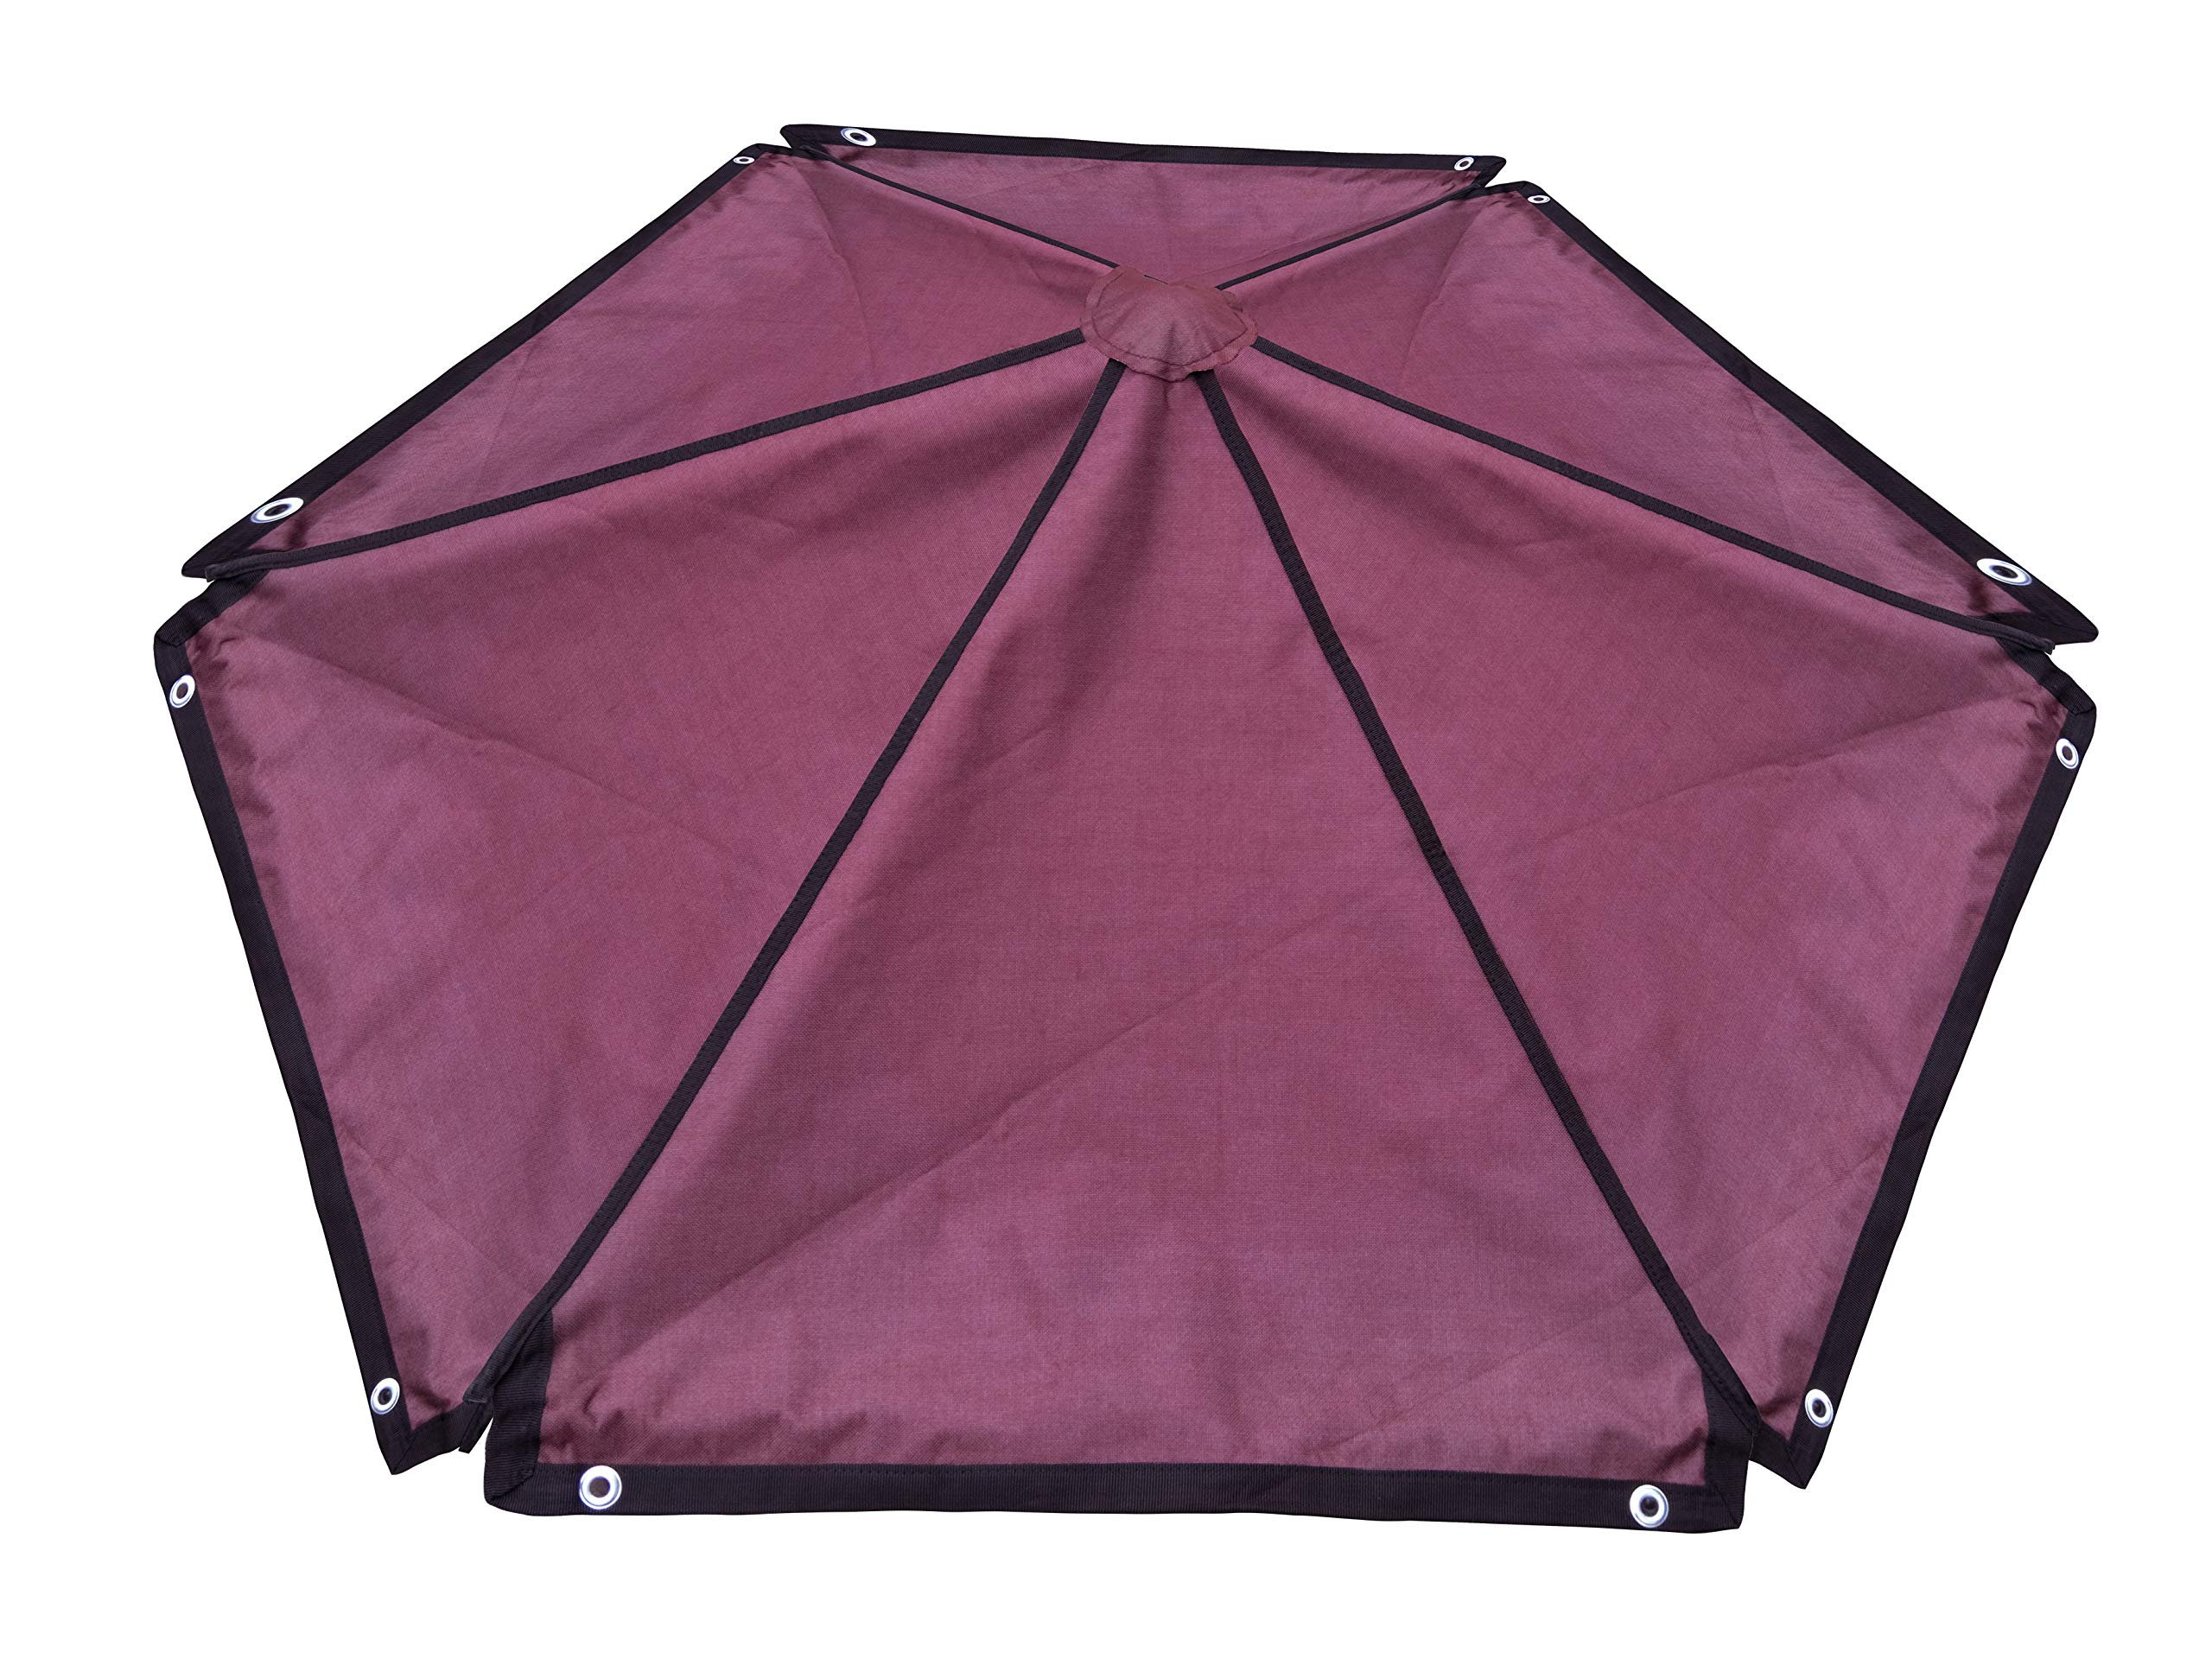 Neocraft 60214 4' Dog Kennel Cover